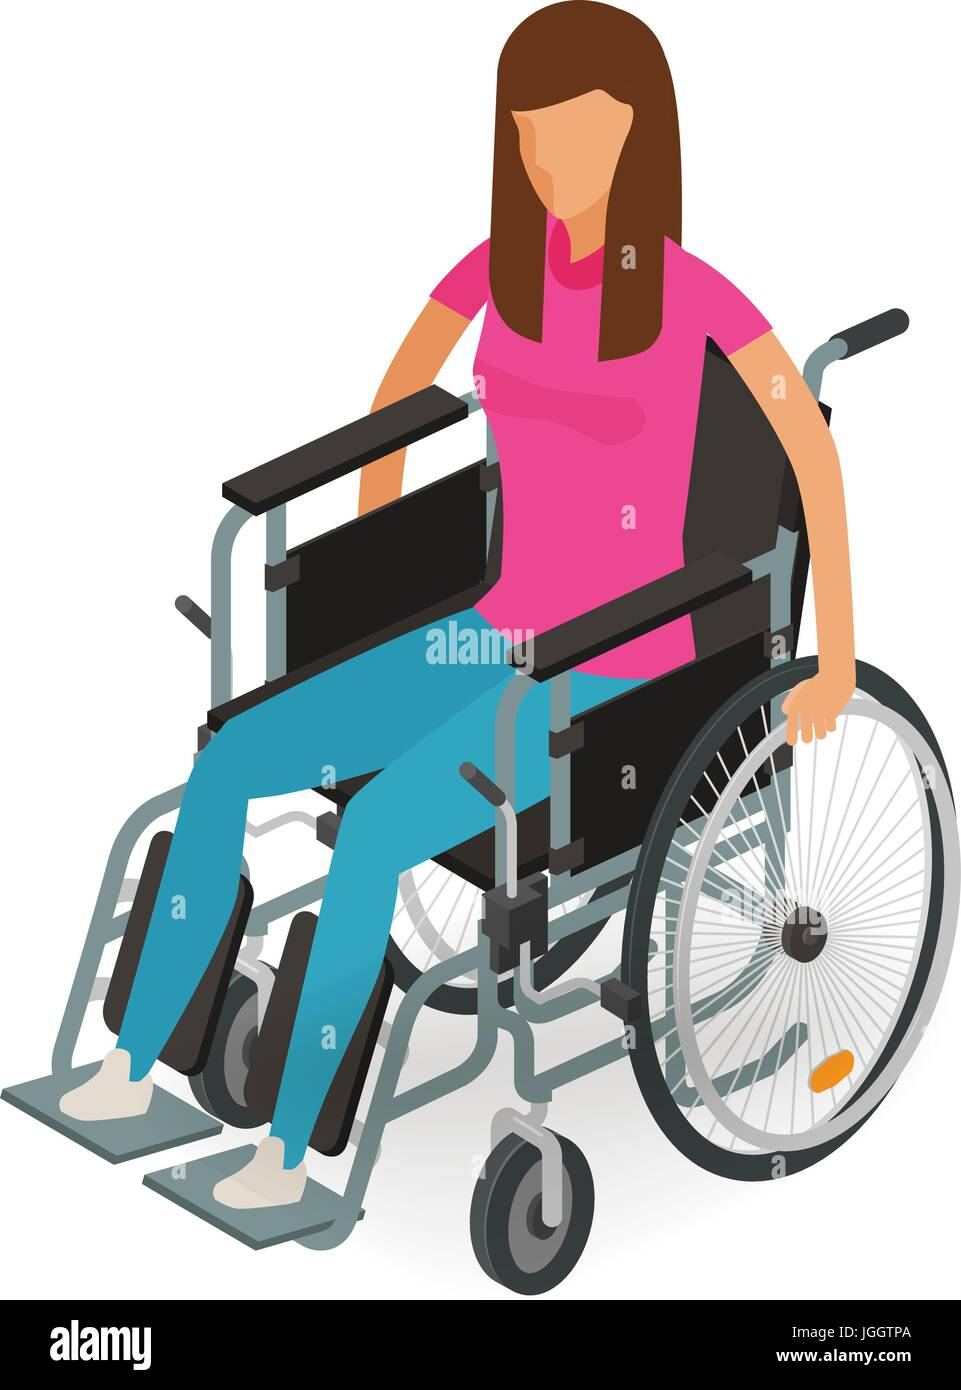 Girl, woman sitting in wheelchair. Invalid, disabled, cripple icon or symbol. Cartoon vector illustration isolated - Stock Vector